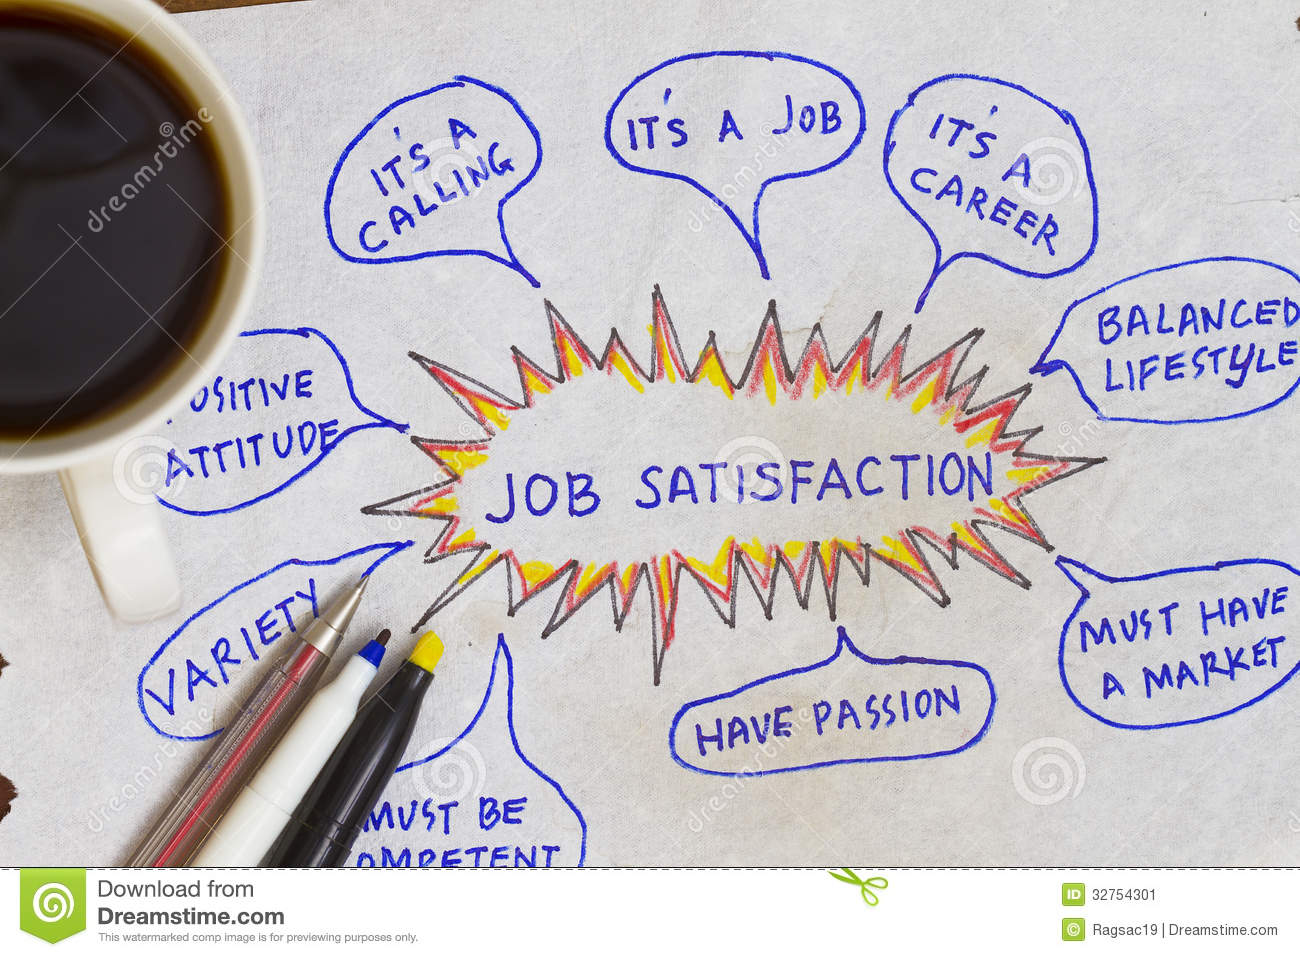 Thesis on work stress and job satisfaction